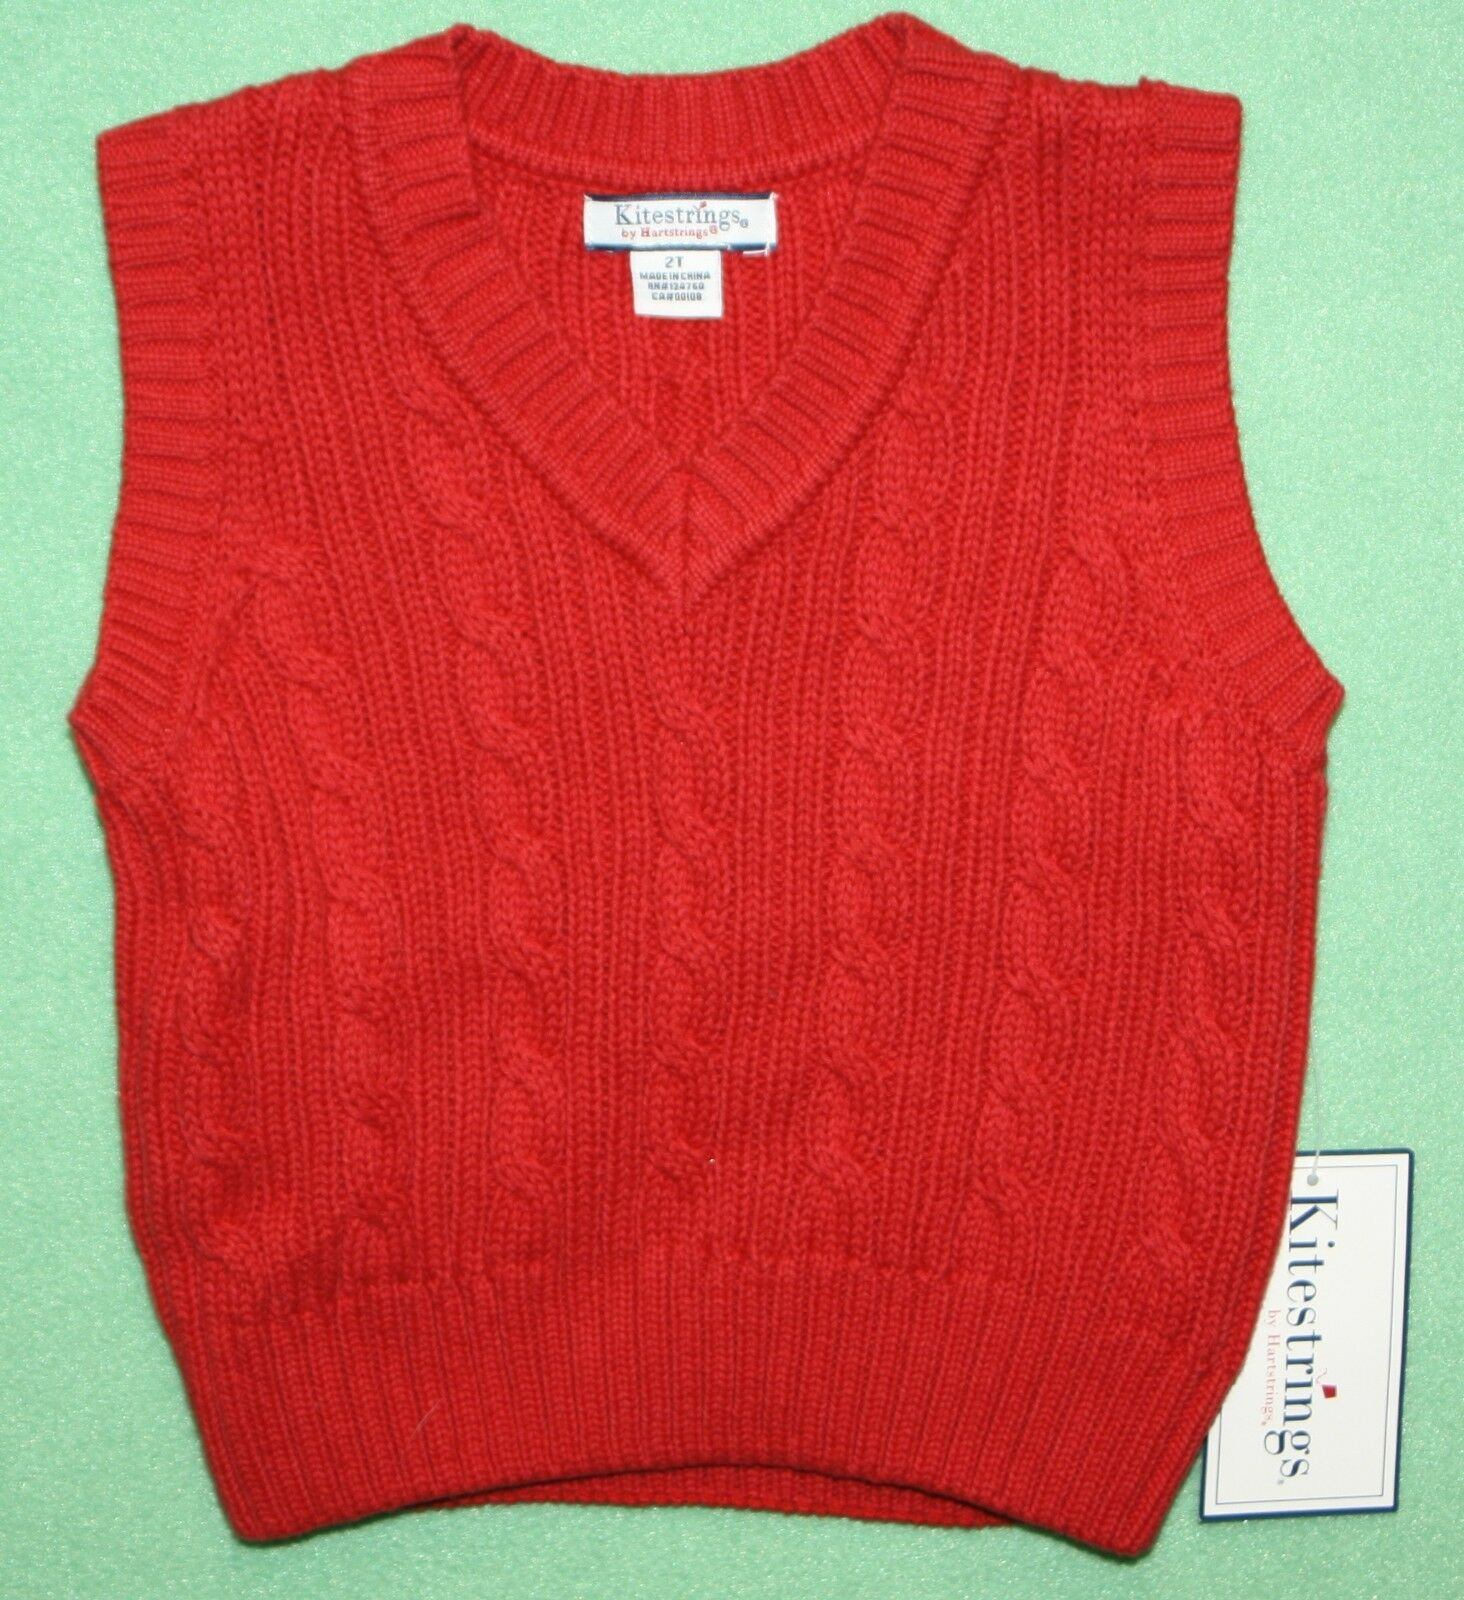 Kitestrings Hartstrings Sweater Vest Cable Knit Red Pullover ...